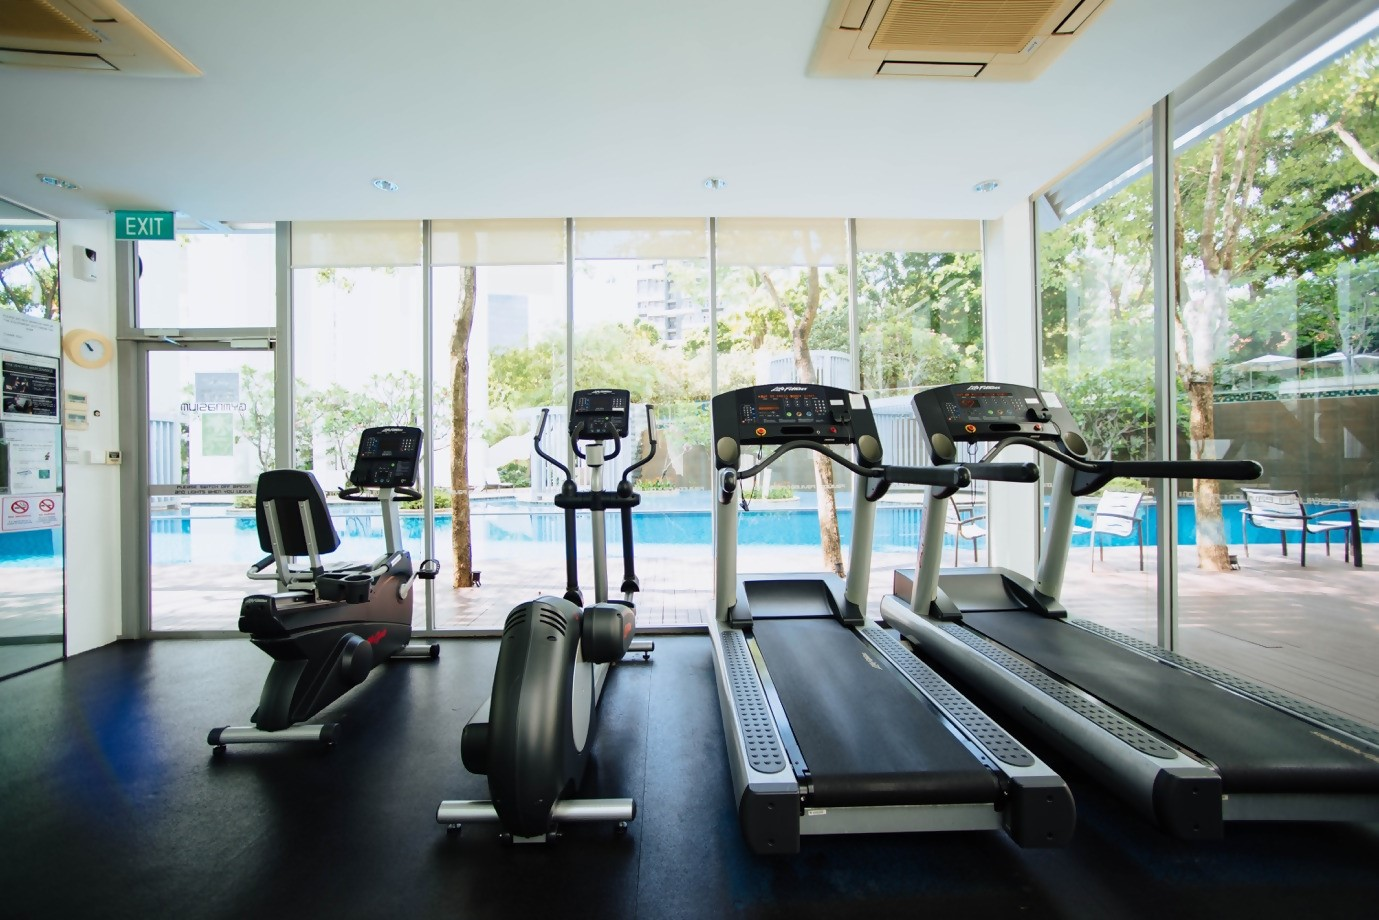 2_treadmills_and_rower